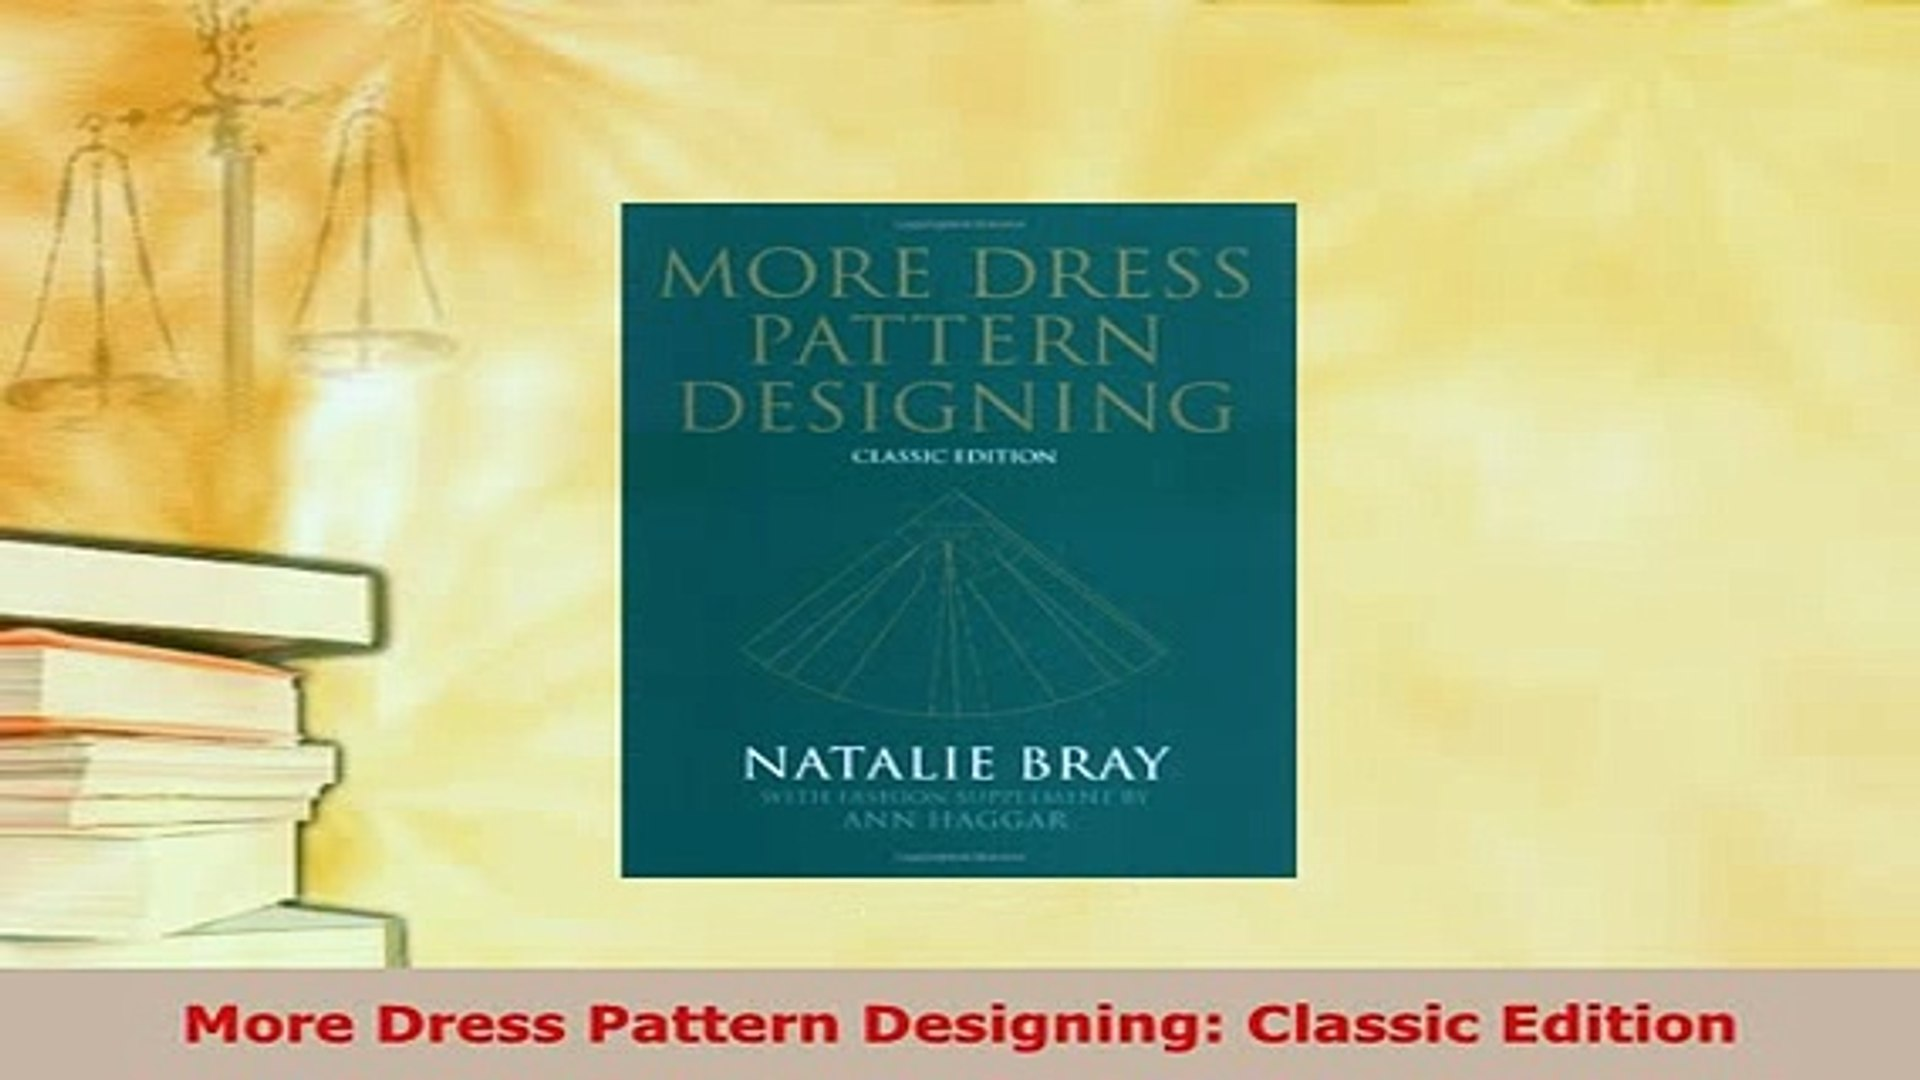 Classic Edition More Dress Pattern Designing